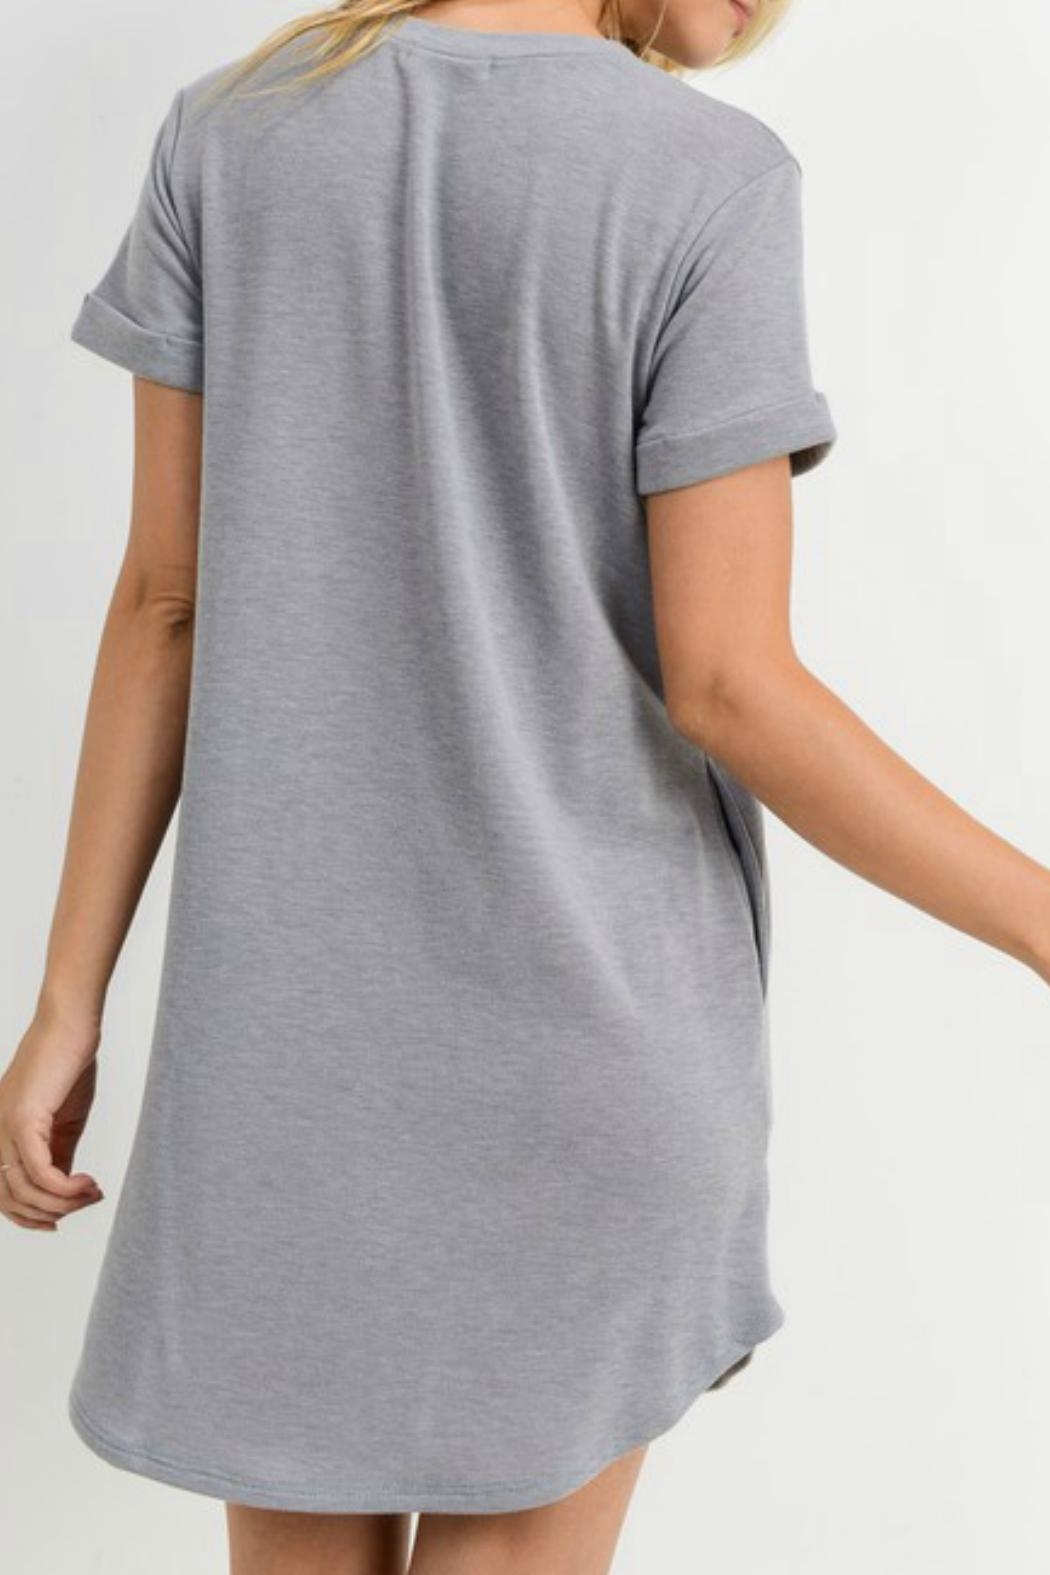 ALB Anchorage Pull-Over T-Shirt Dress - Front Full Image